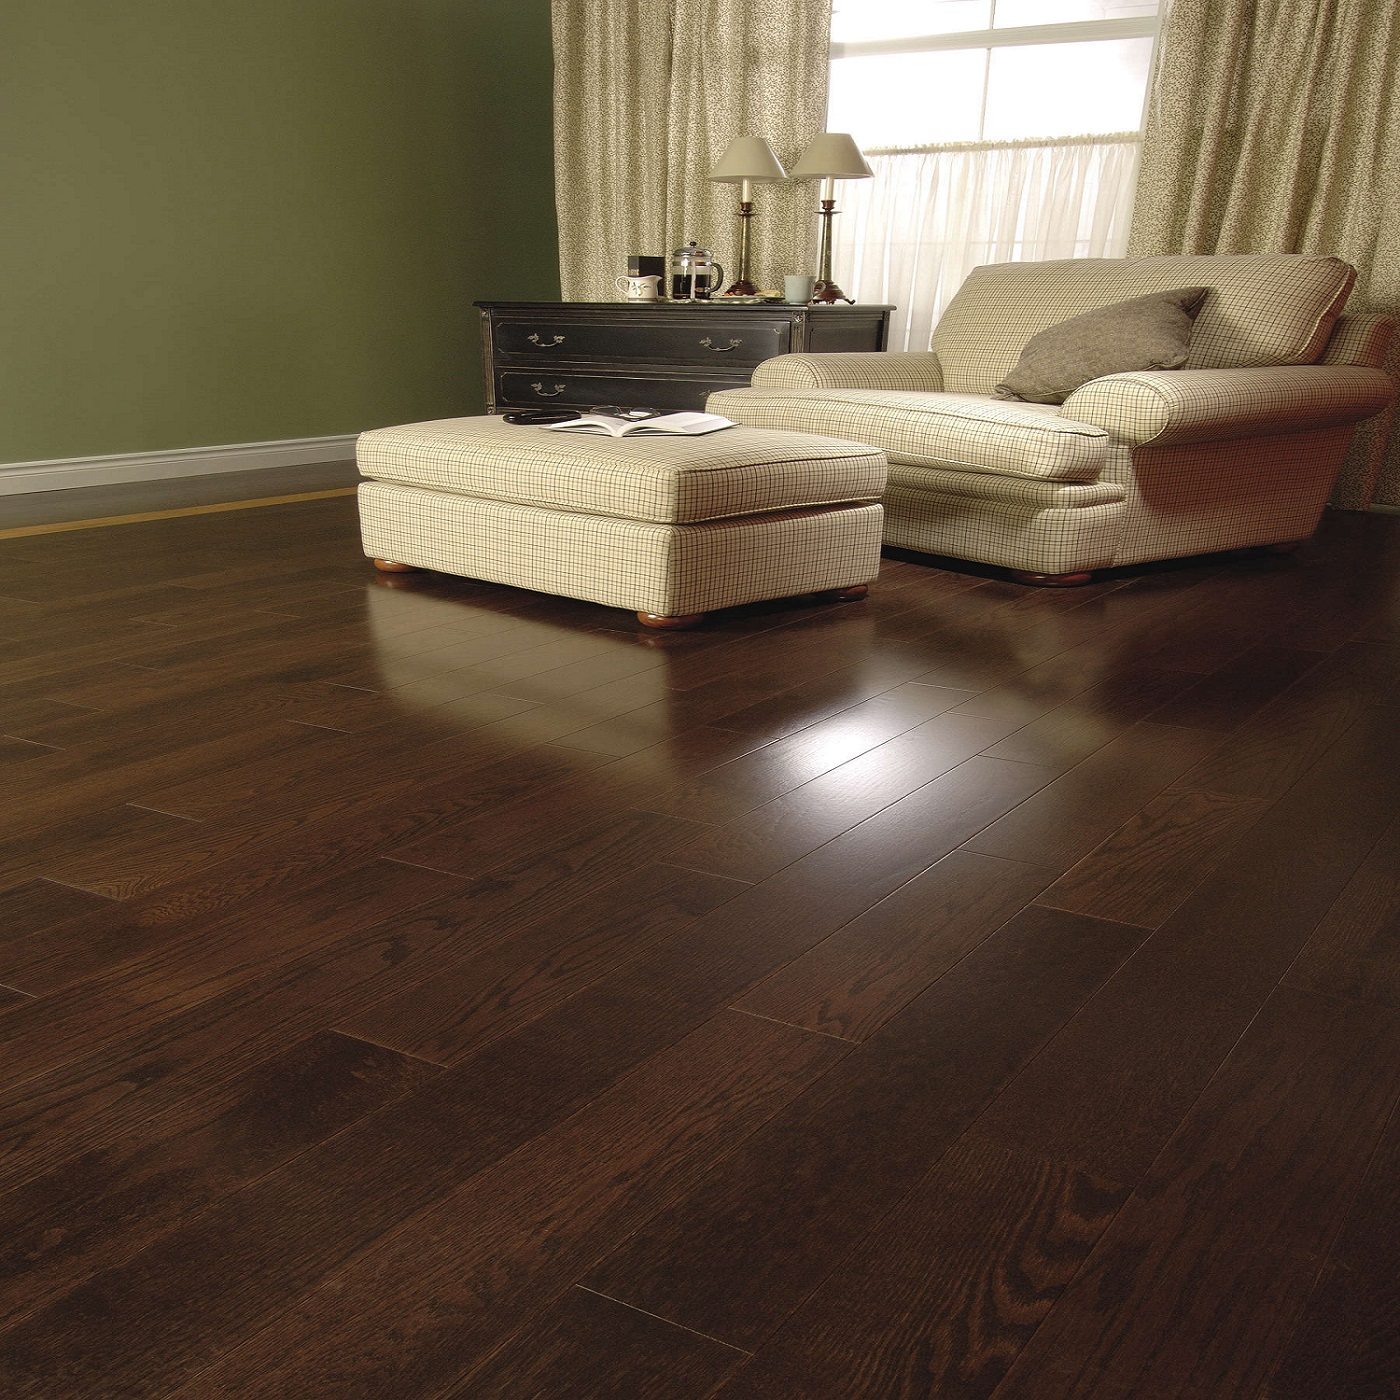 Mirage vienna maple lock hardwood flooring for Mirage hardwood flooring